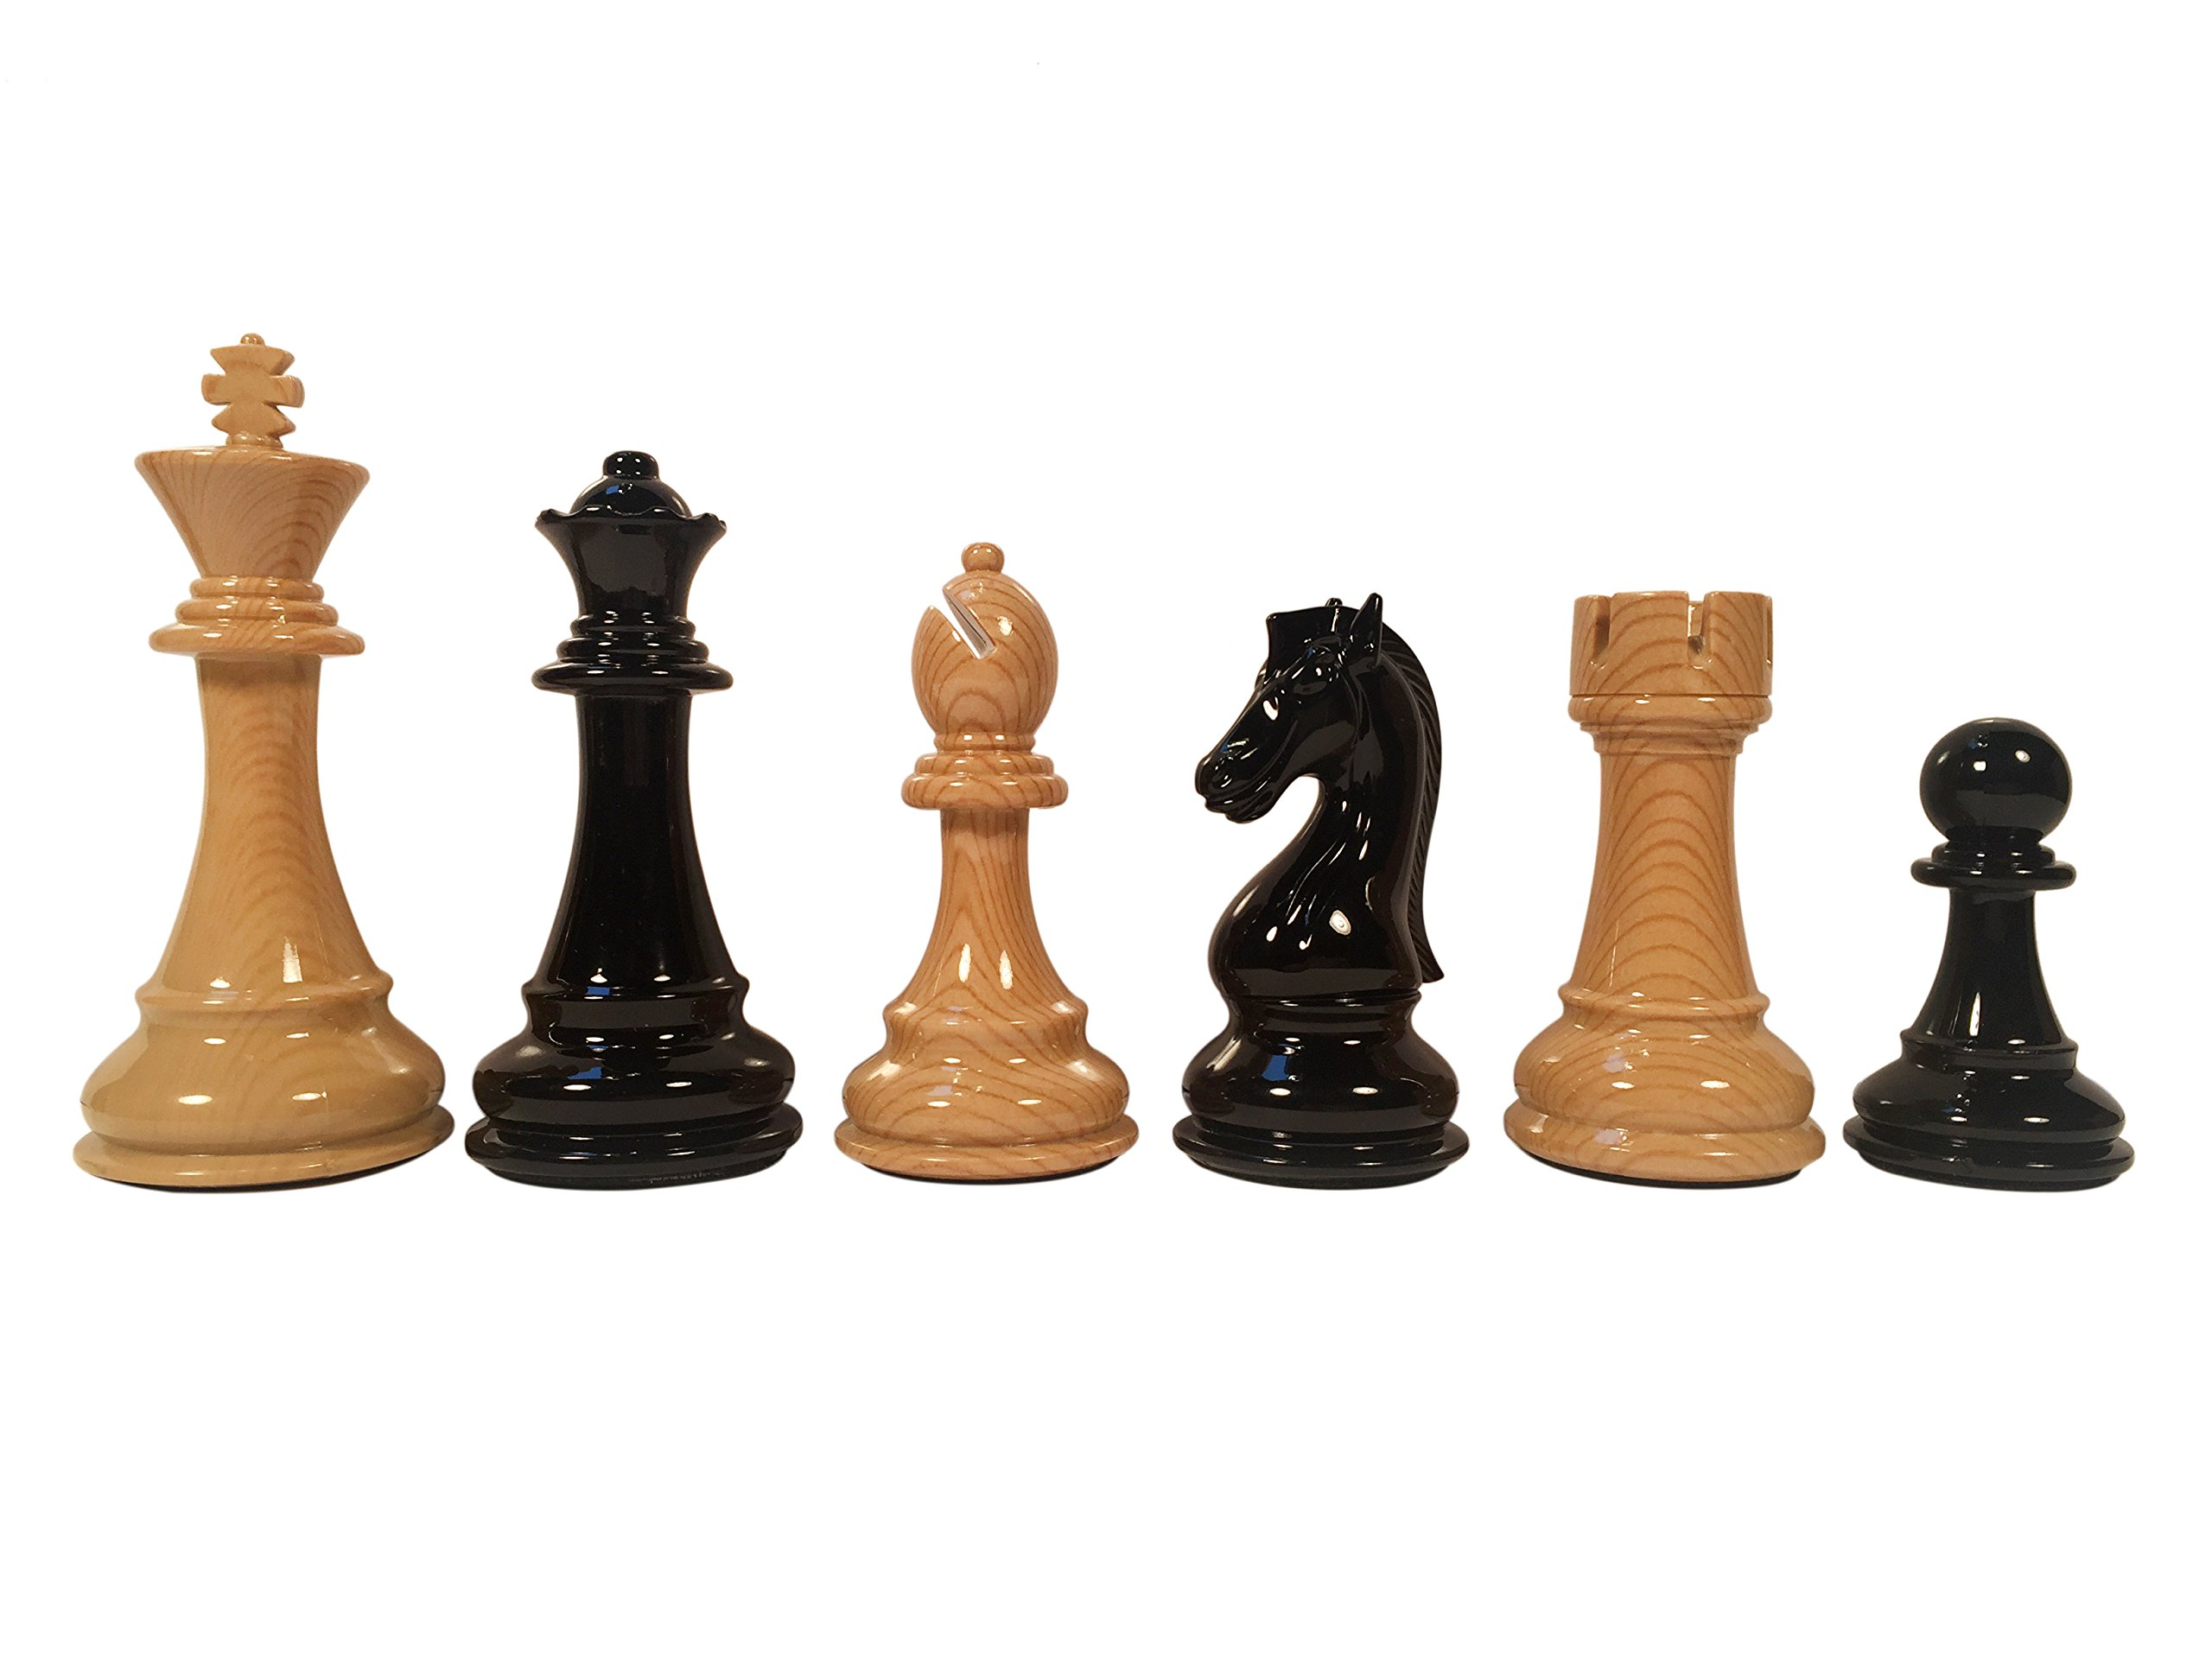 The Bobby Fischer Series Faux Wood Chess Pieces – 4.25 inch King by WE Games